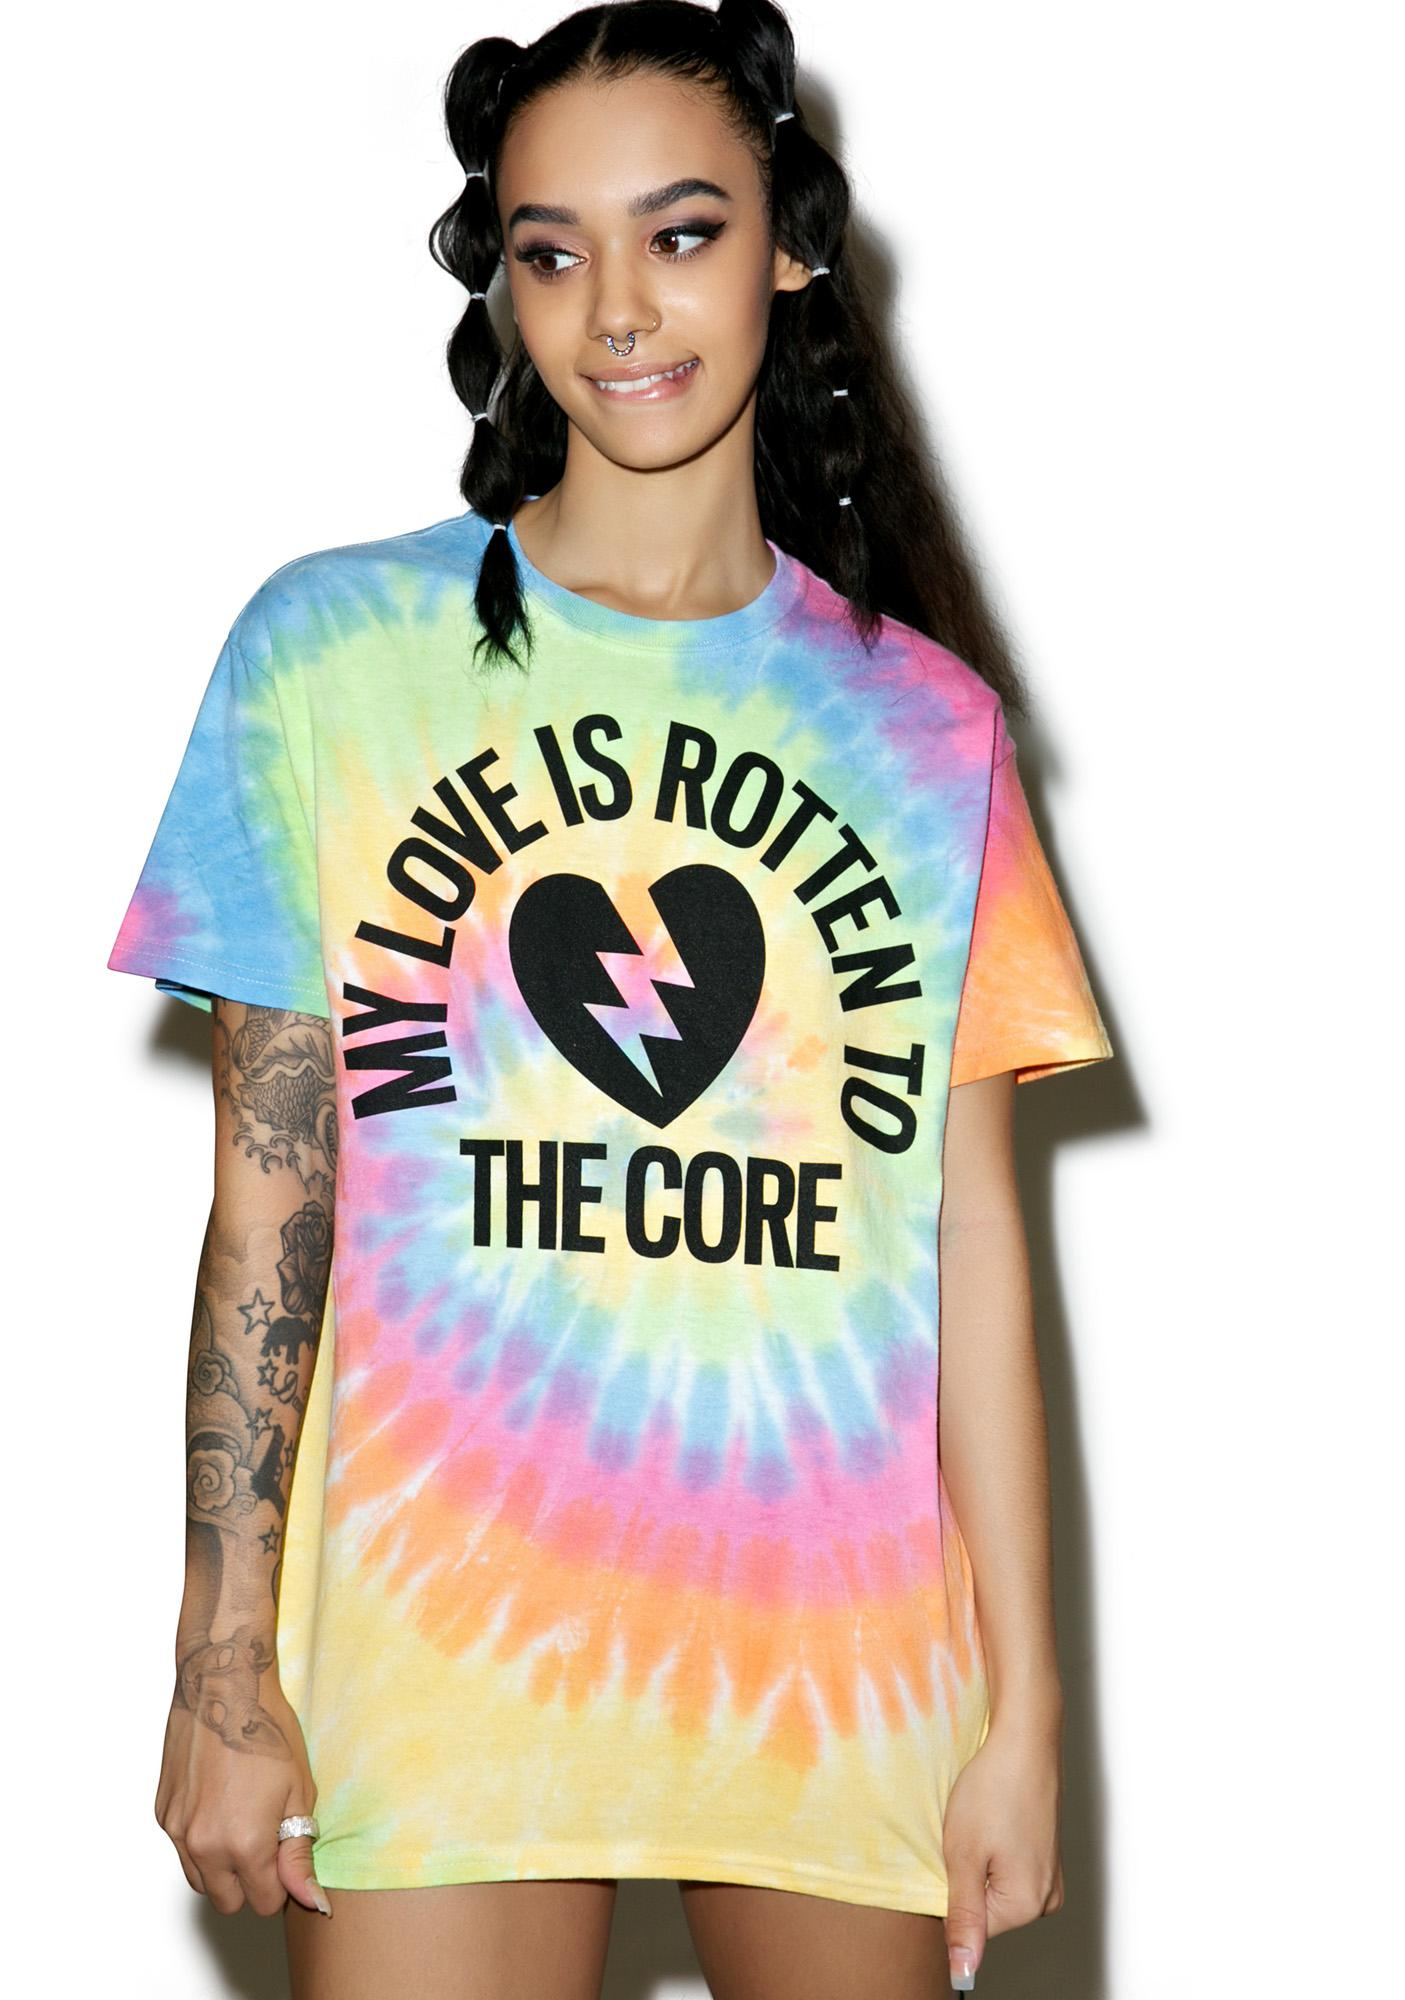 Burger And Friends Rotten 2 The Core Tee